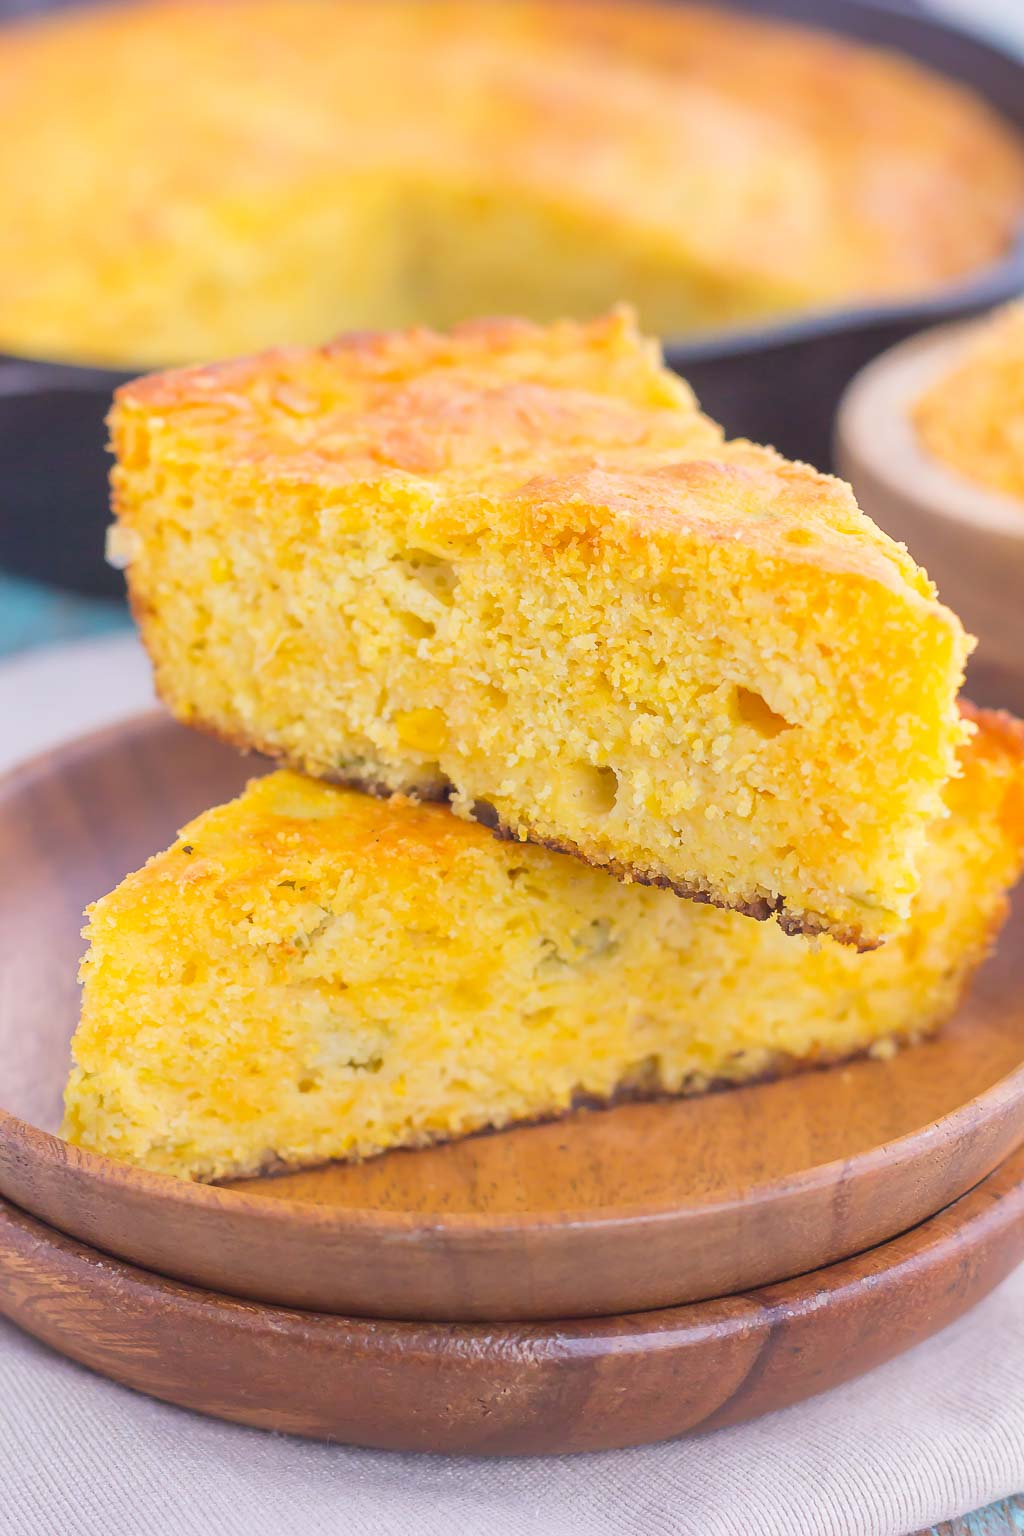 This Southwest Skillet Cornbread is the perfect combination of sweet and spicy that will be a favorite for years to come. Loaded with cheddar cheese, green chiles, and creamed corned, this easy cornbread bakes up moist, tender, and full of flavor! #cornbread #cornbreadrecipe #skilletcornbread #southwestcornbread #breadrecipe